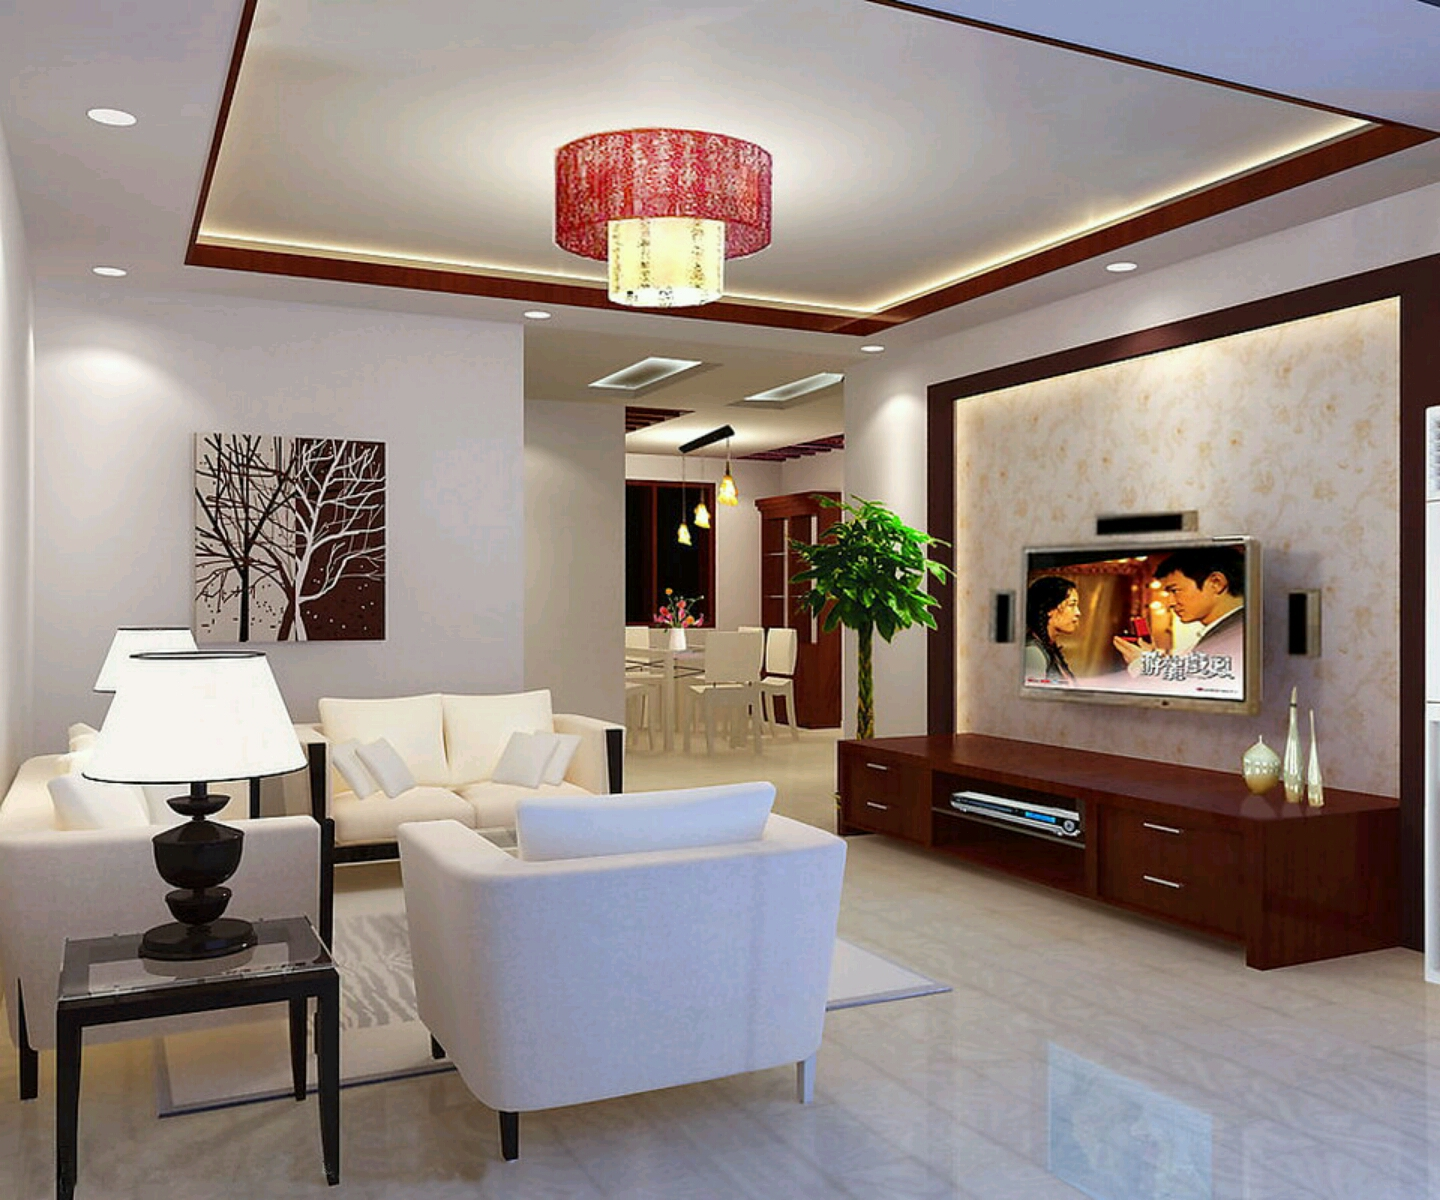 Modern interior decoration living rooms ceiling designs for Interior room decoration